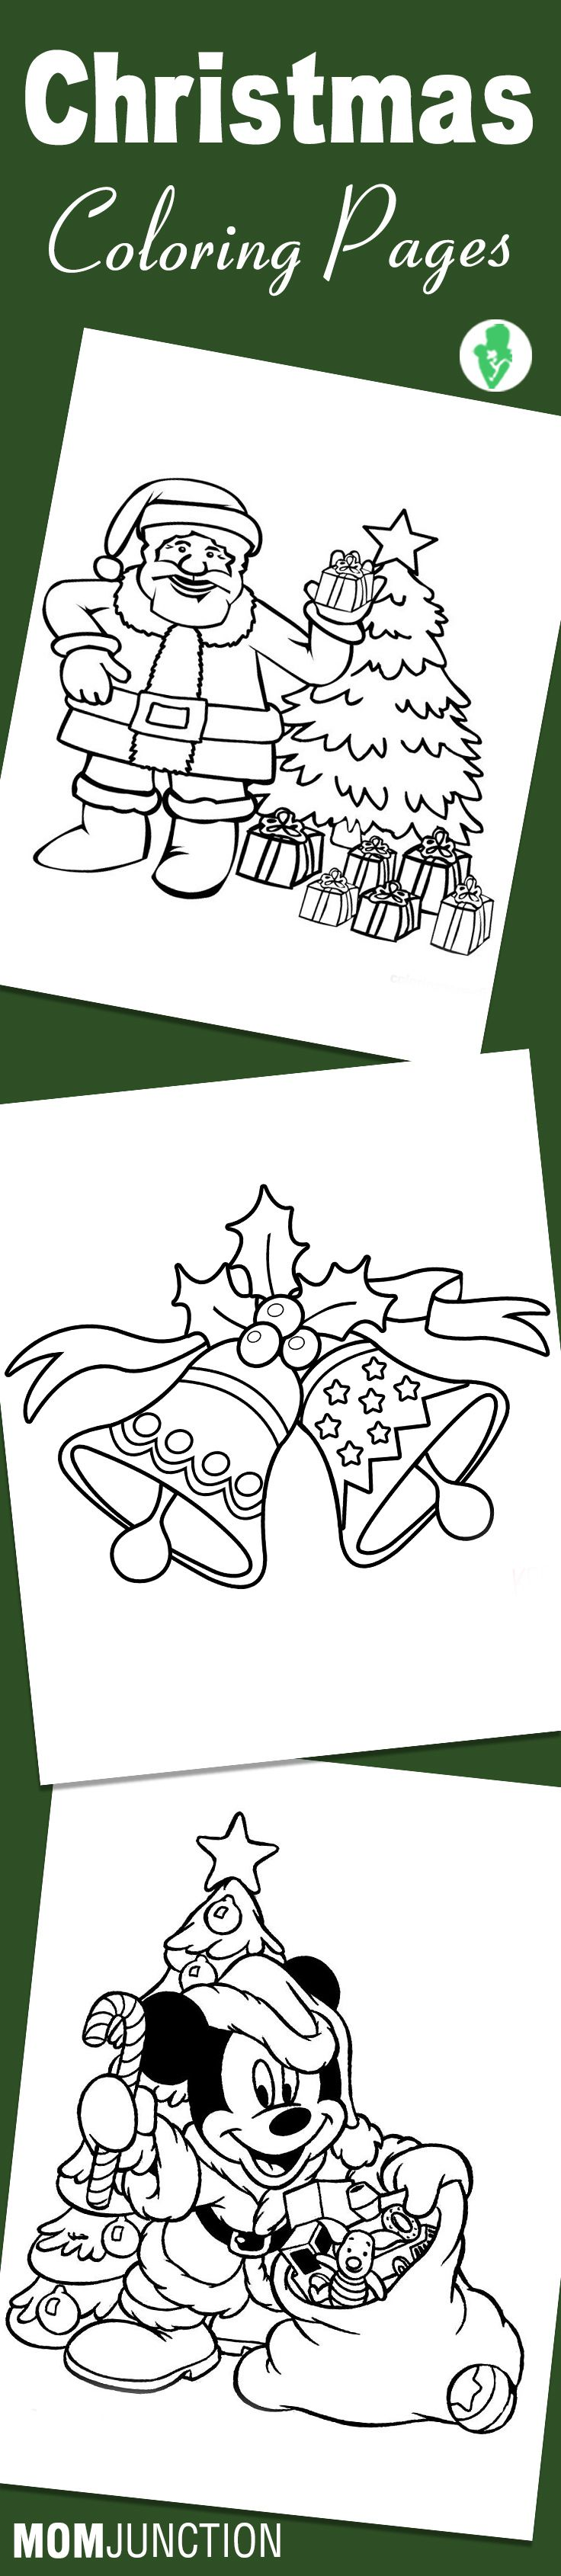 top 25 free printable christmas coloring pages online holidays